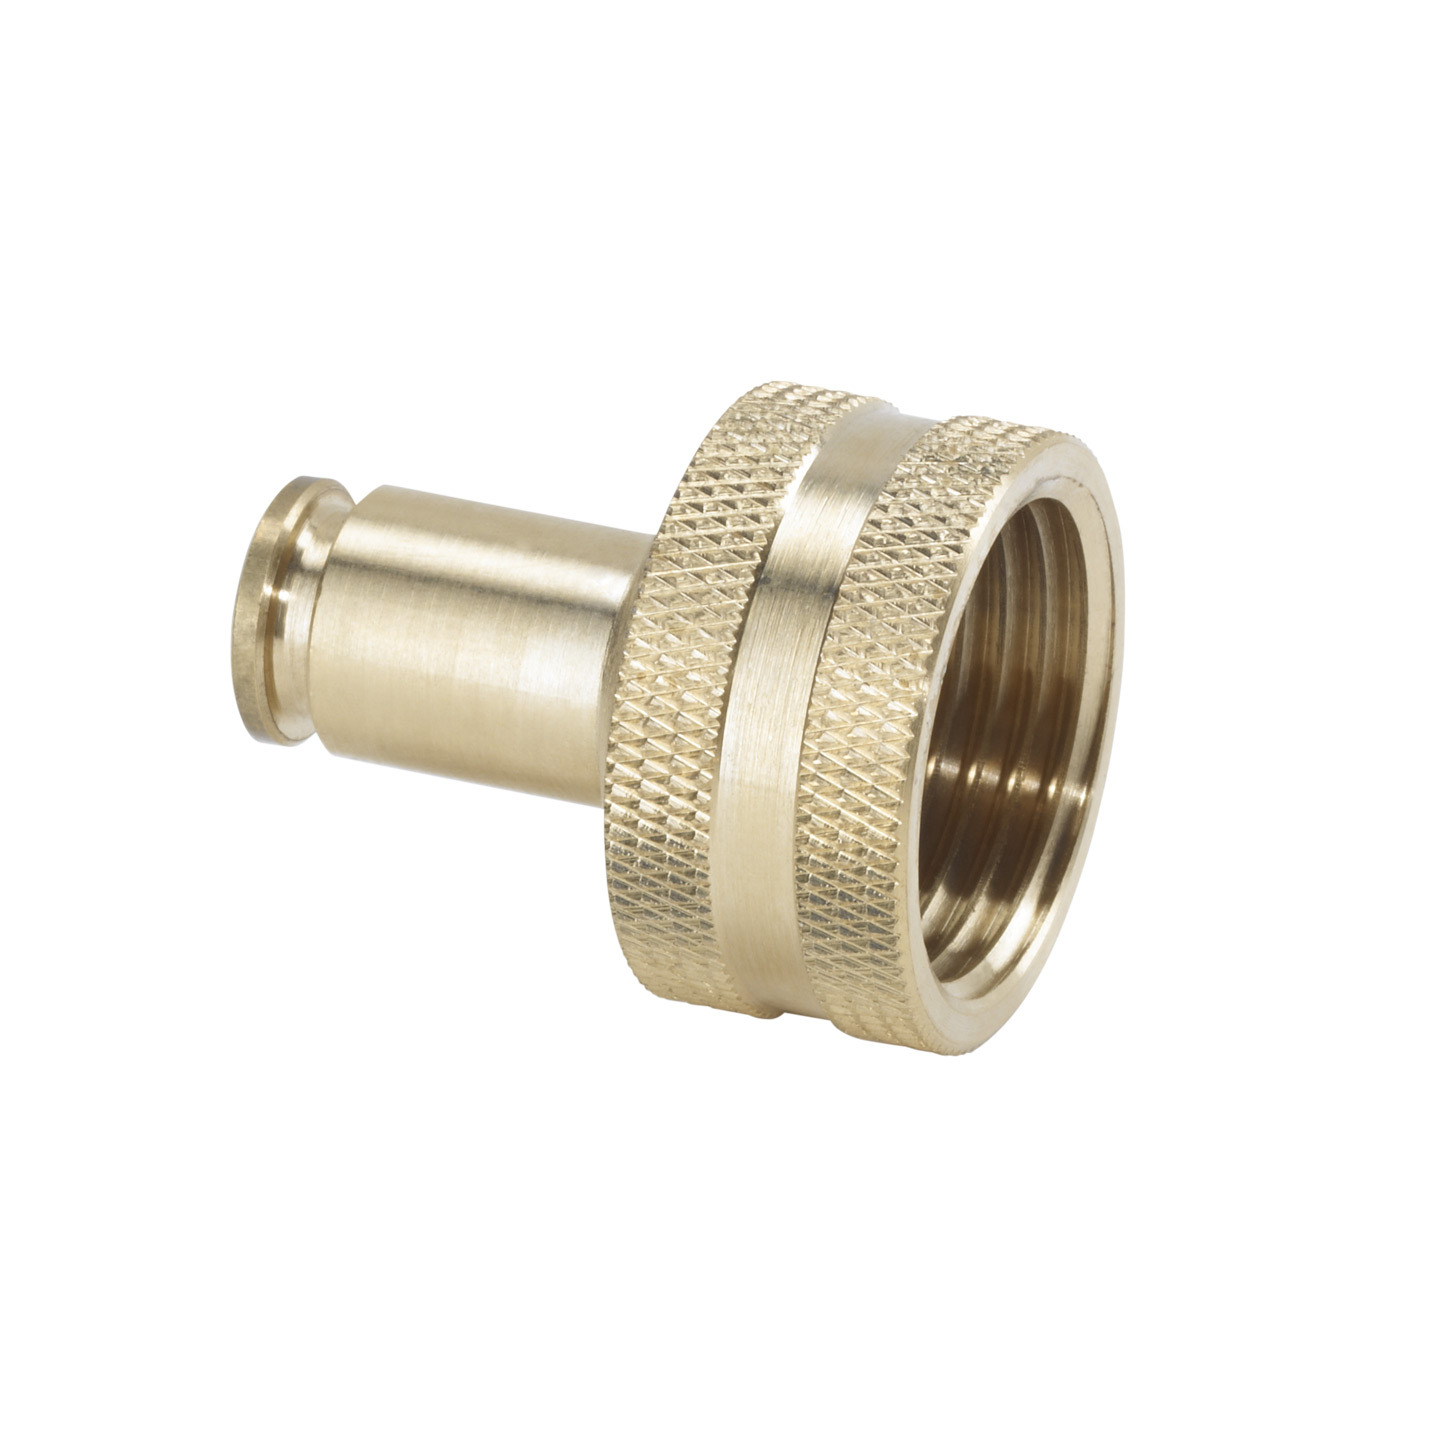 Hose adapter for hose